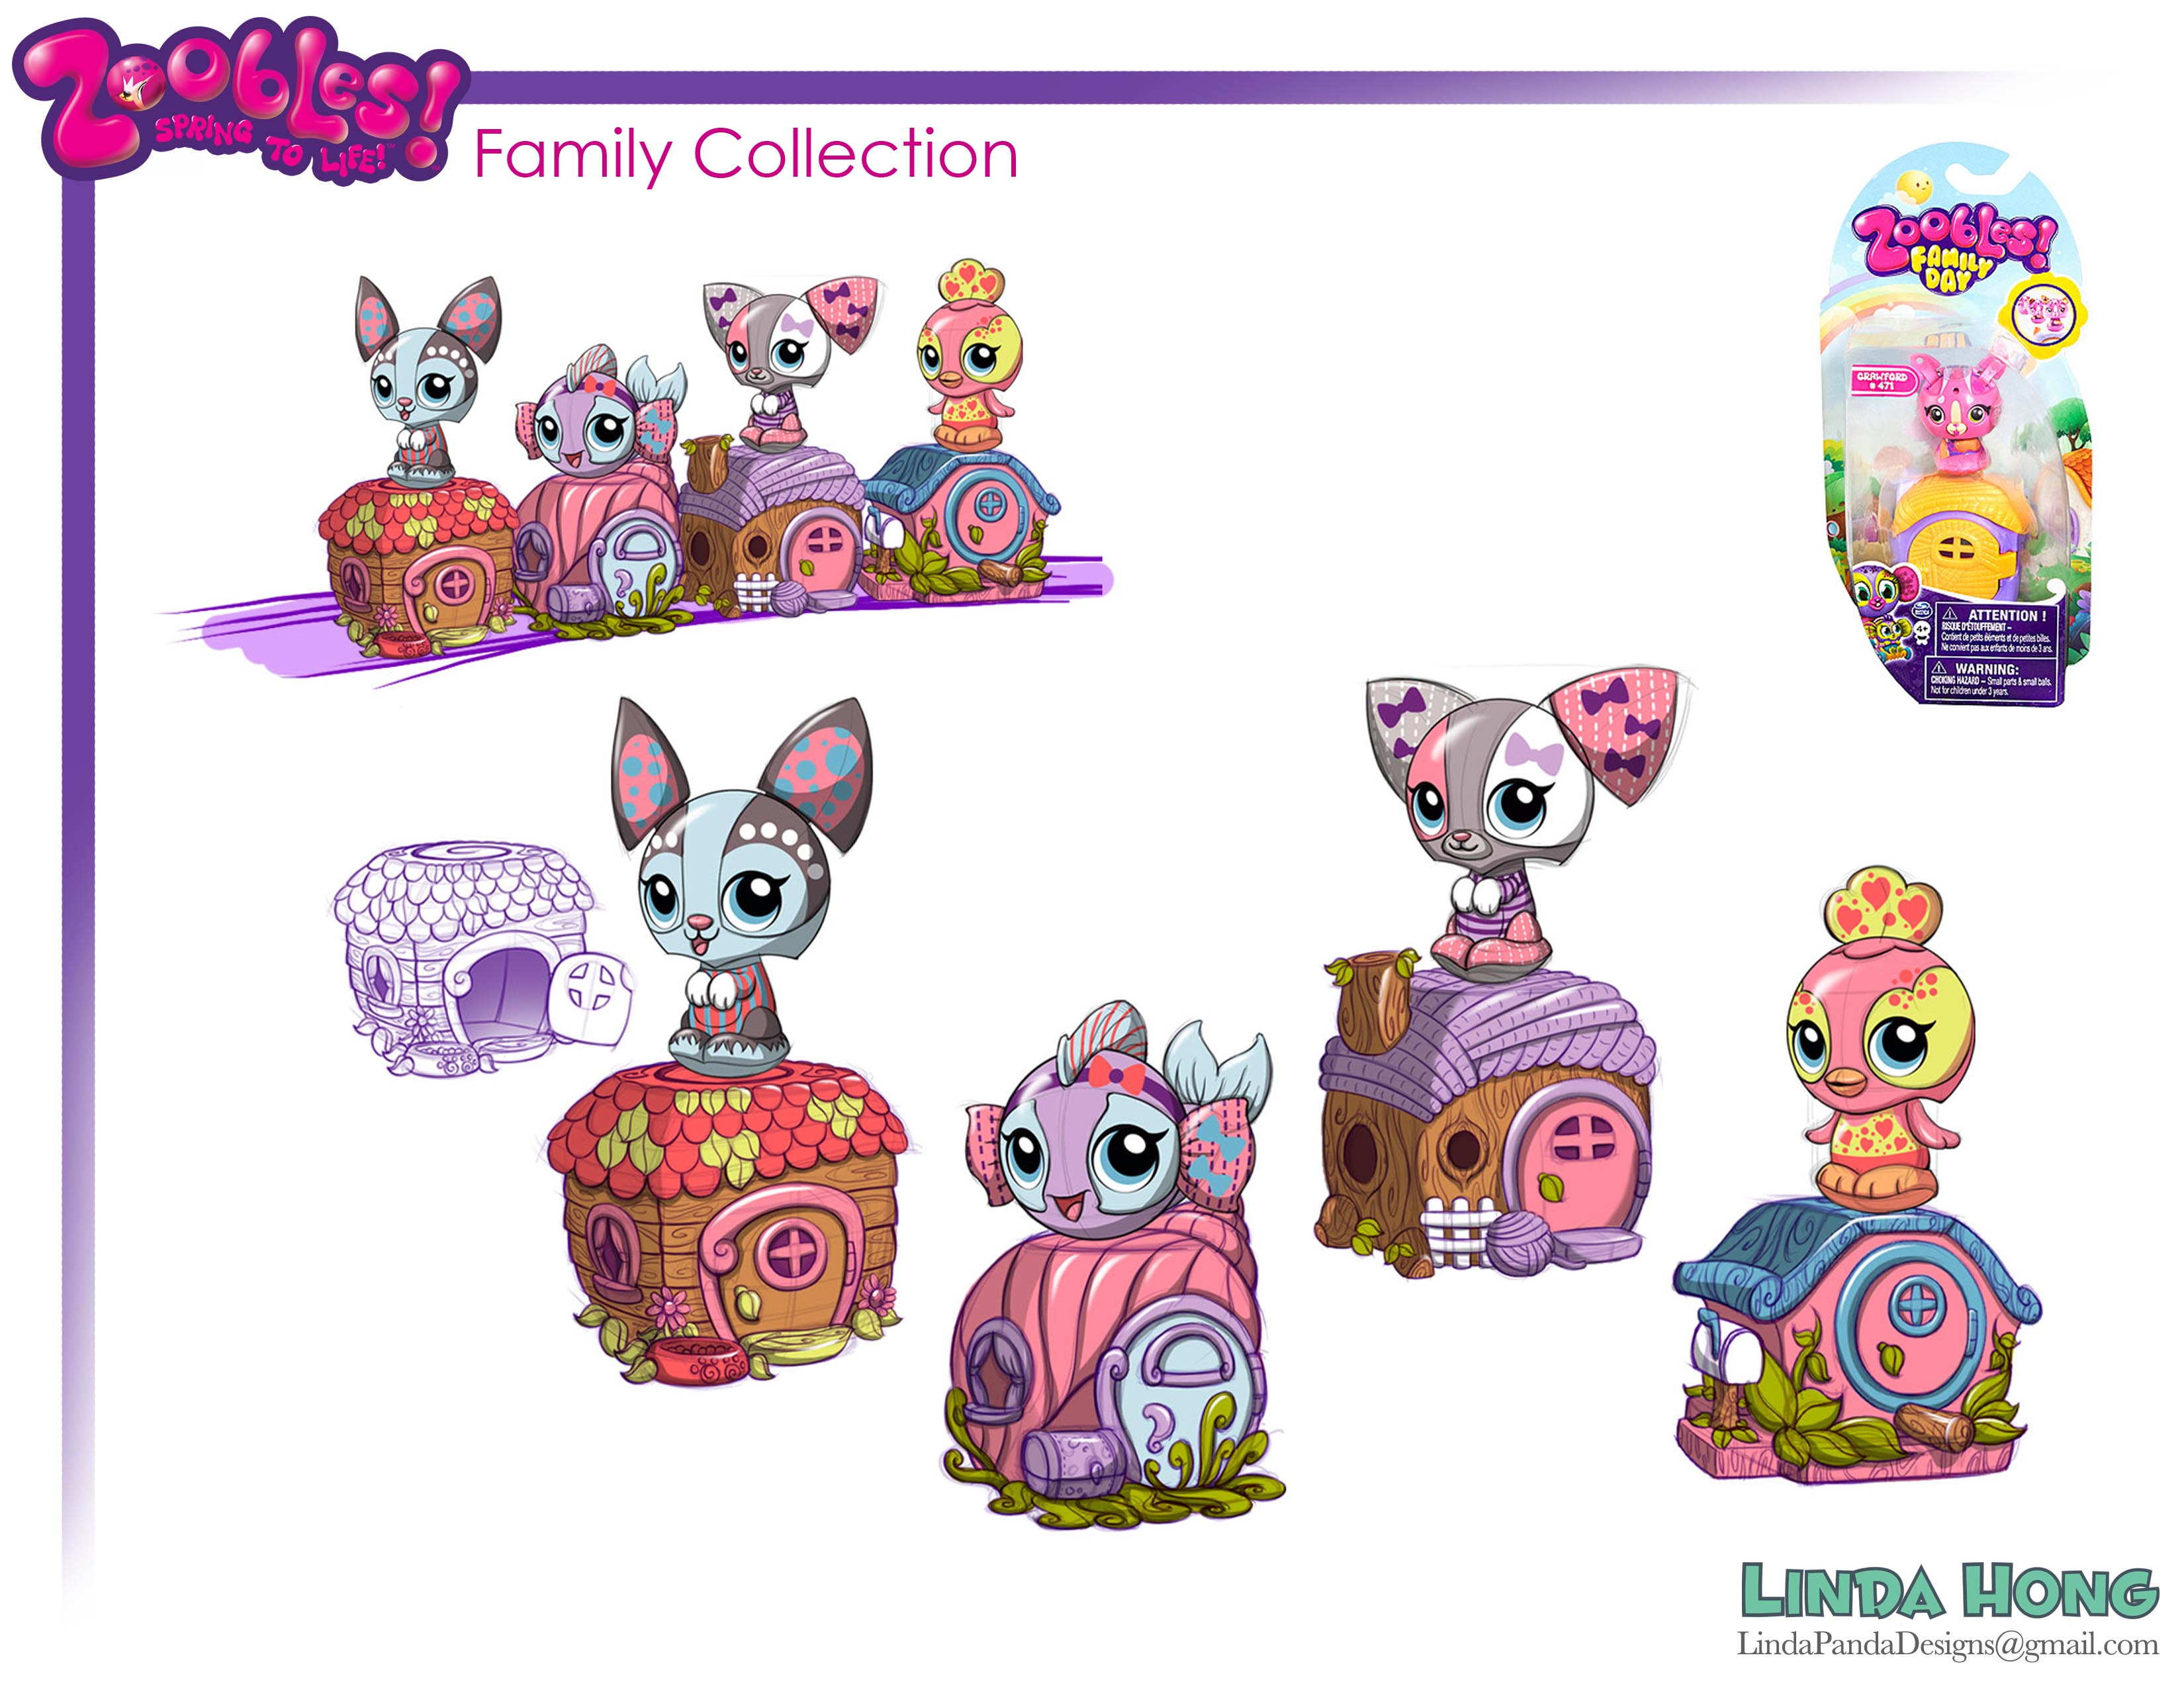 Zoobles Family Collection